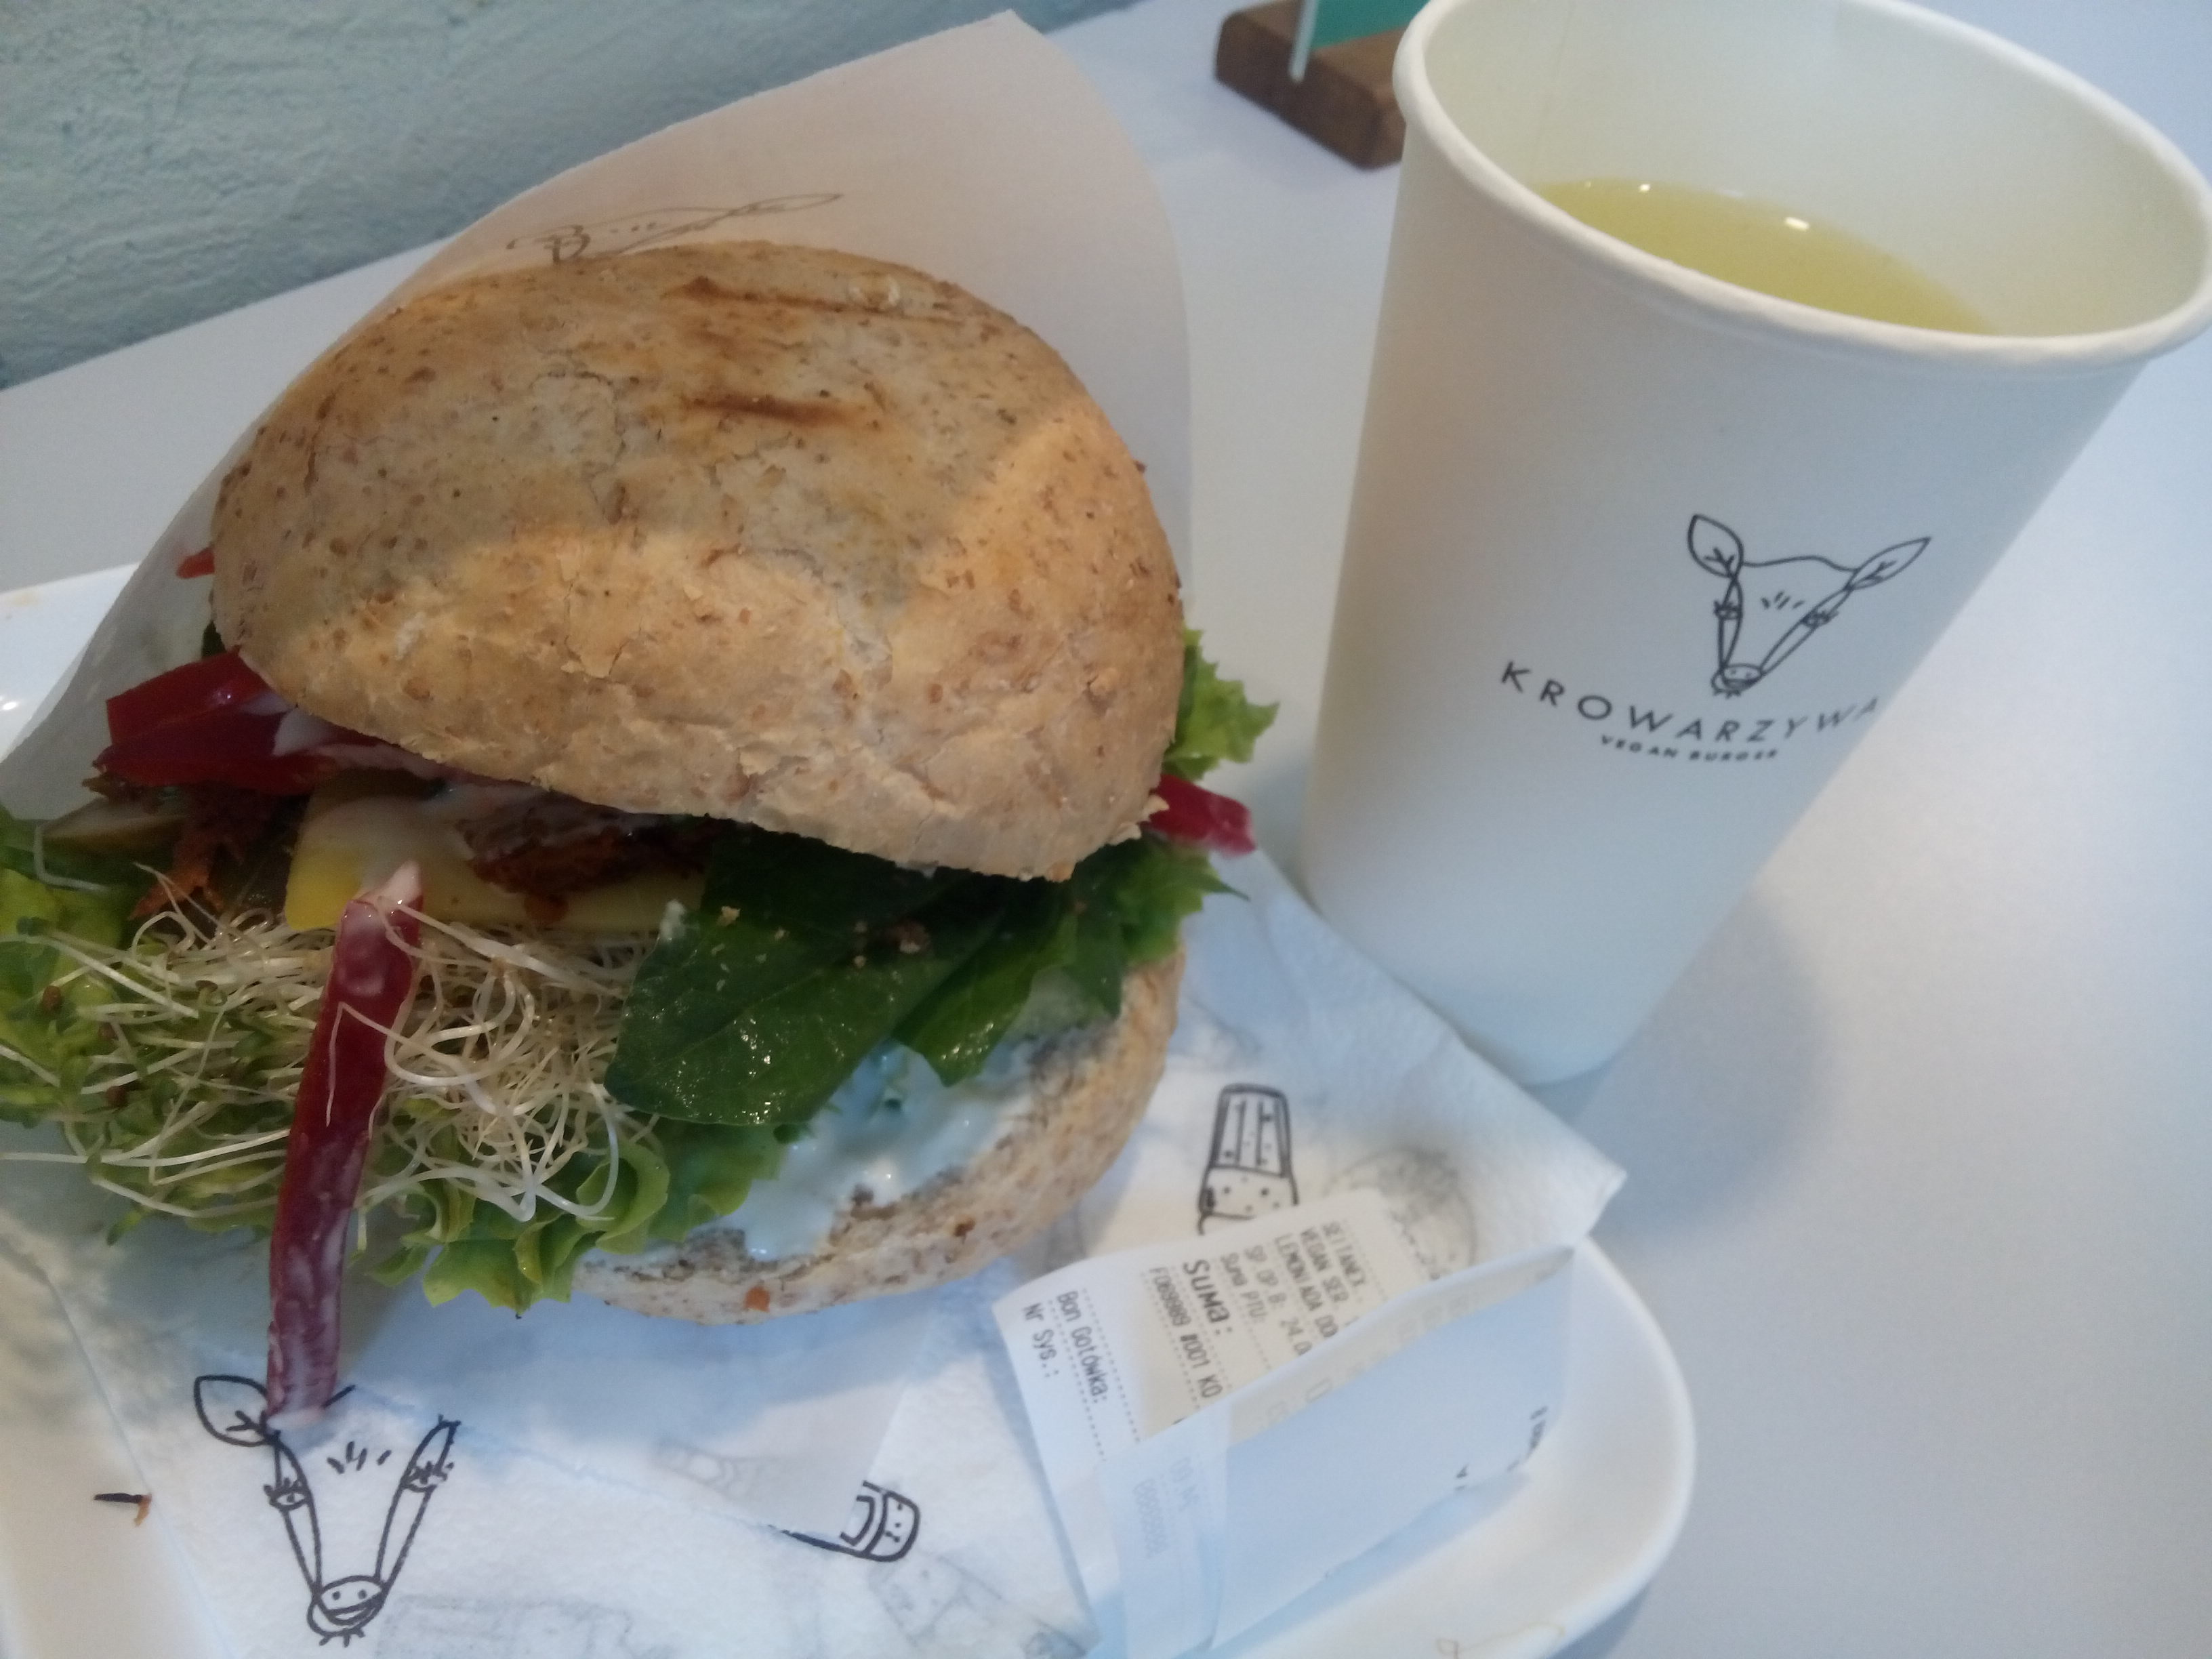 A paper cup with a line drawing of a cow and something yellow in, and a tray with a burger, brown bun exploding with salad and sprouts